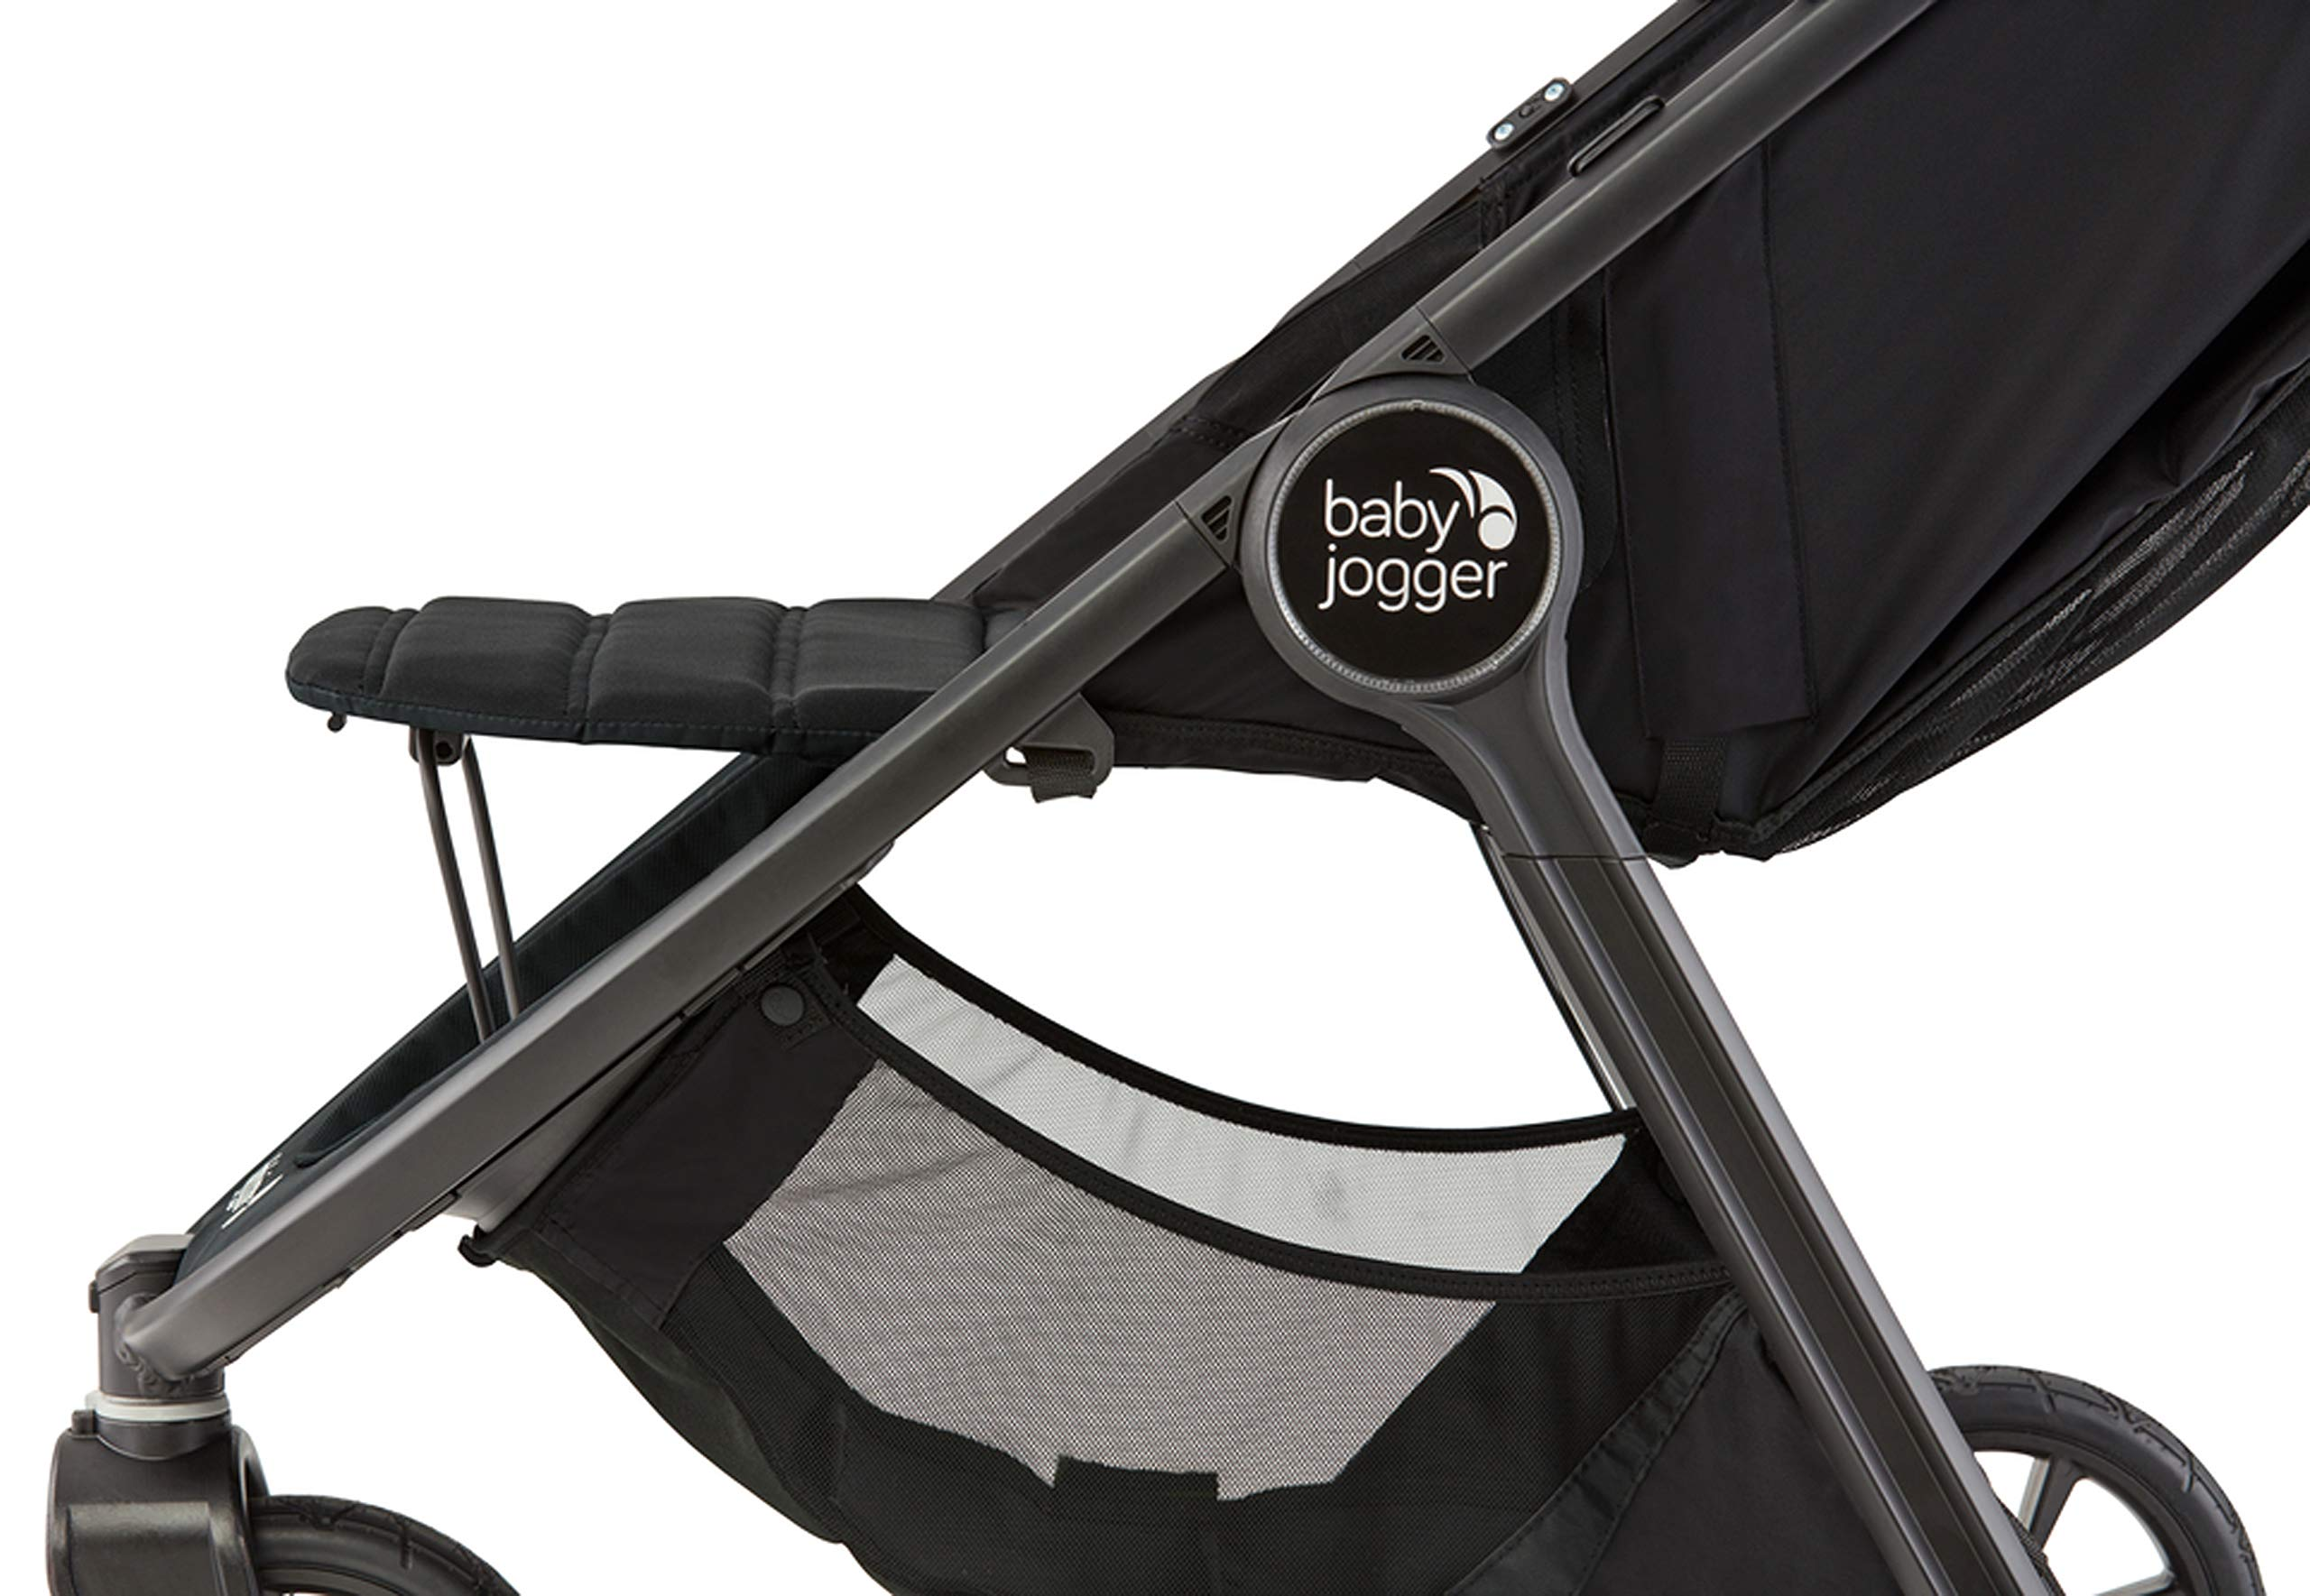 baby jogger City Mini GT2 Single Stroller Jet Baby Jogger The baby jogger city mini GT2 has an all new design, with signature one-hand compact fold, has forever air rubber tyres and all wheel suspension providing uncompromised agility on any terrain Lift a strap with one hand and the city mini GT2, folds itself: simply and compactly. The auto-lock will lock the fold for transportation or storage The seat, with an adjustable calf support and near-flat recline, holds a child weighing up to 22kg and includes a 5-point stroller harness to keep them comfortable and safely secured 3